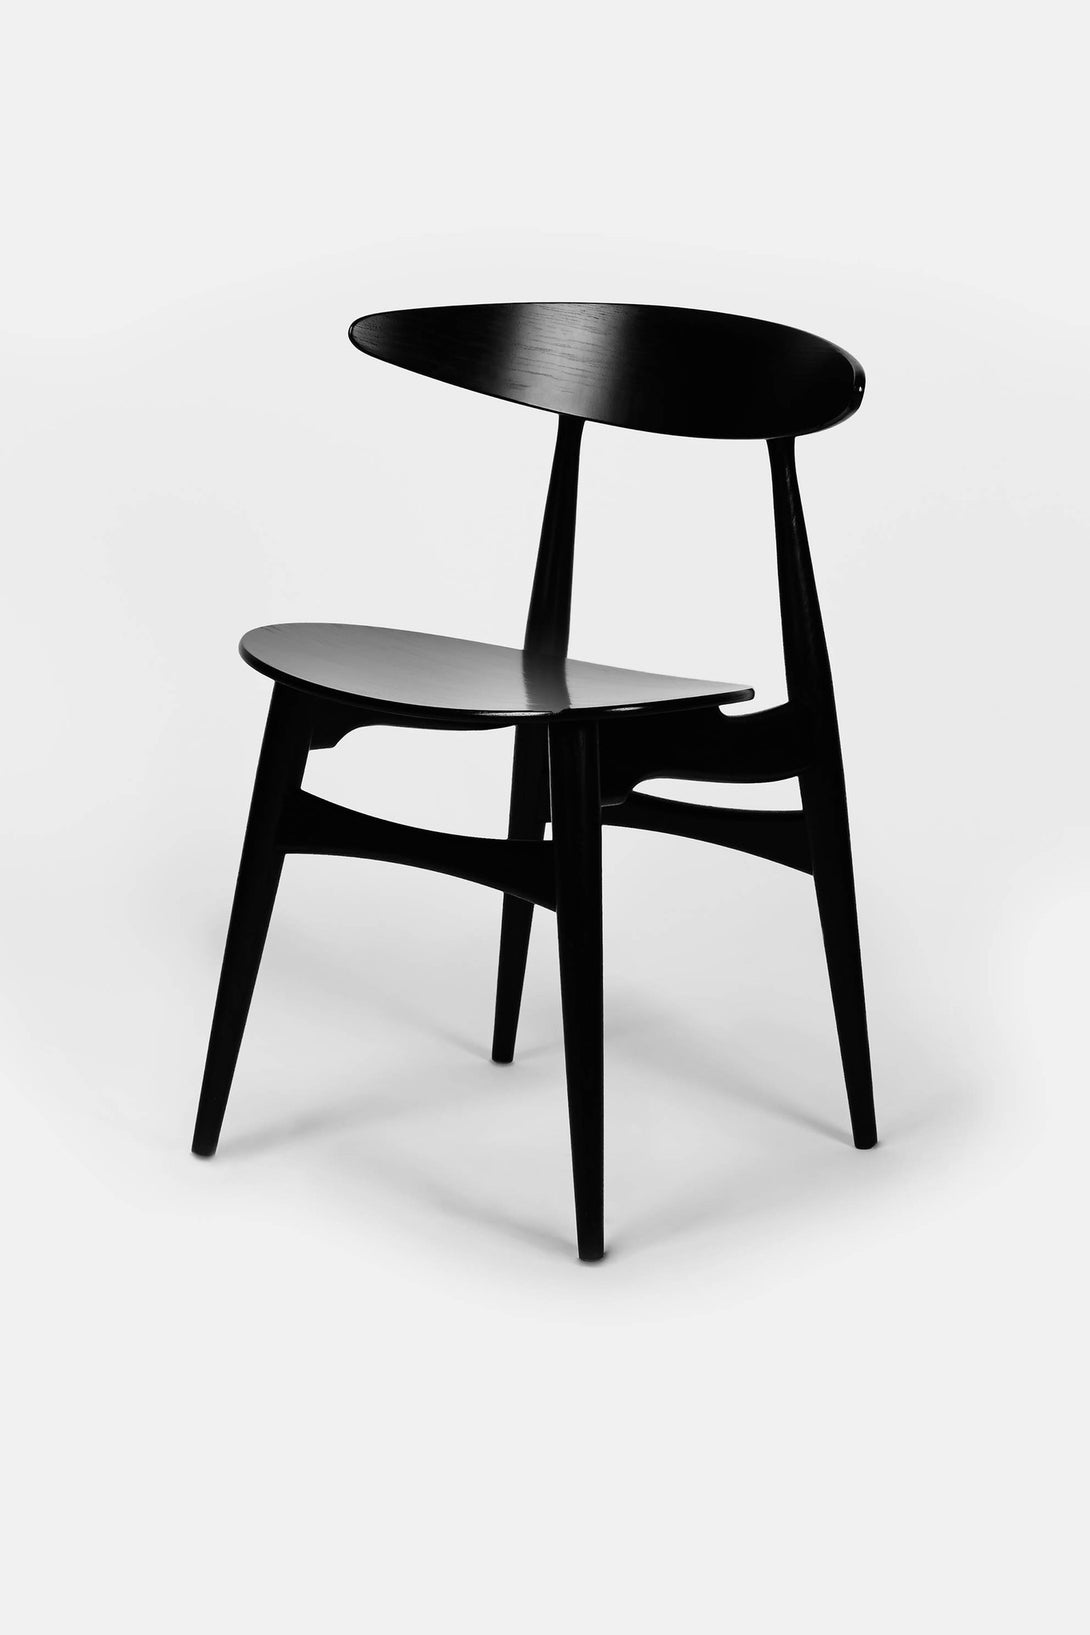 hans wegner ch33 dining chair black oak the line. Black Bedroom Furniture Sets. Home Design Ideas